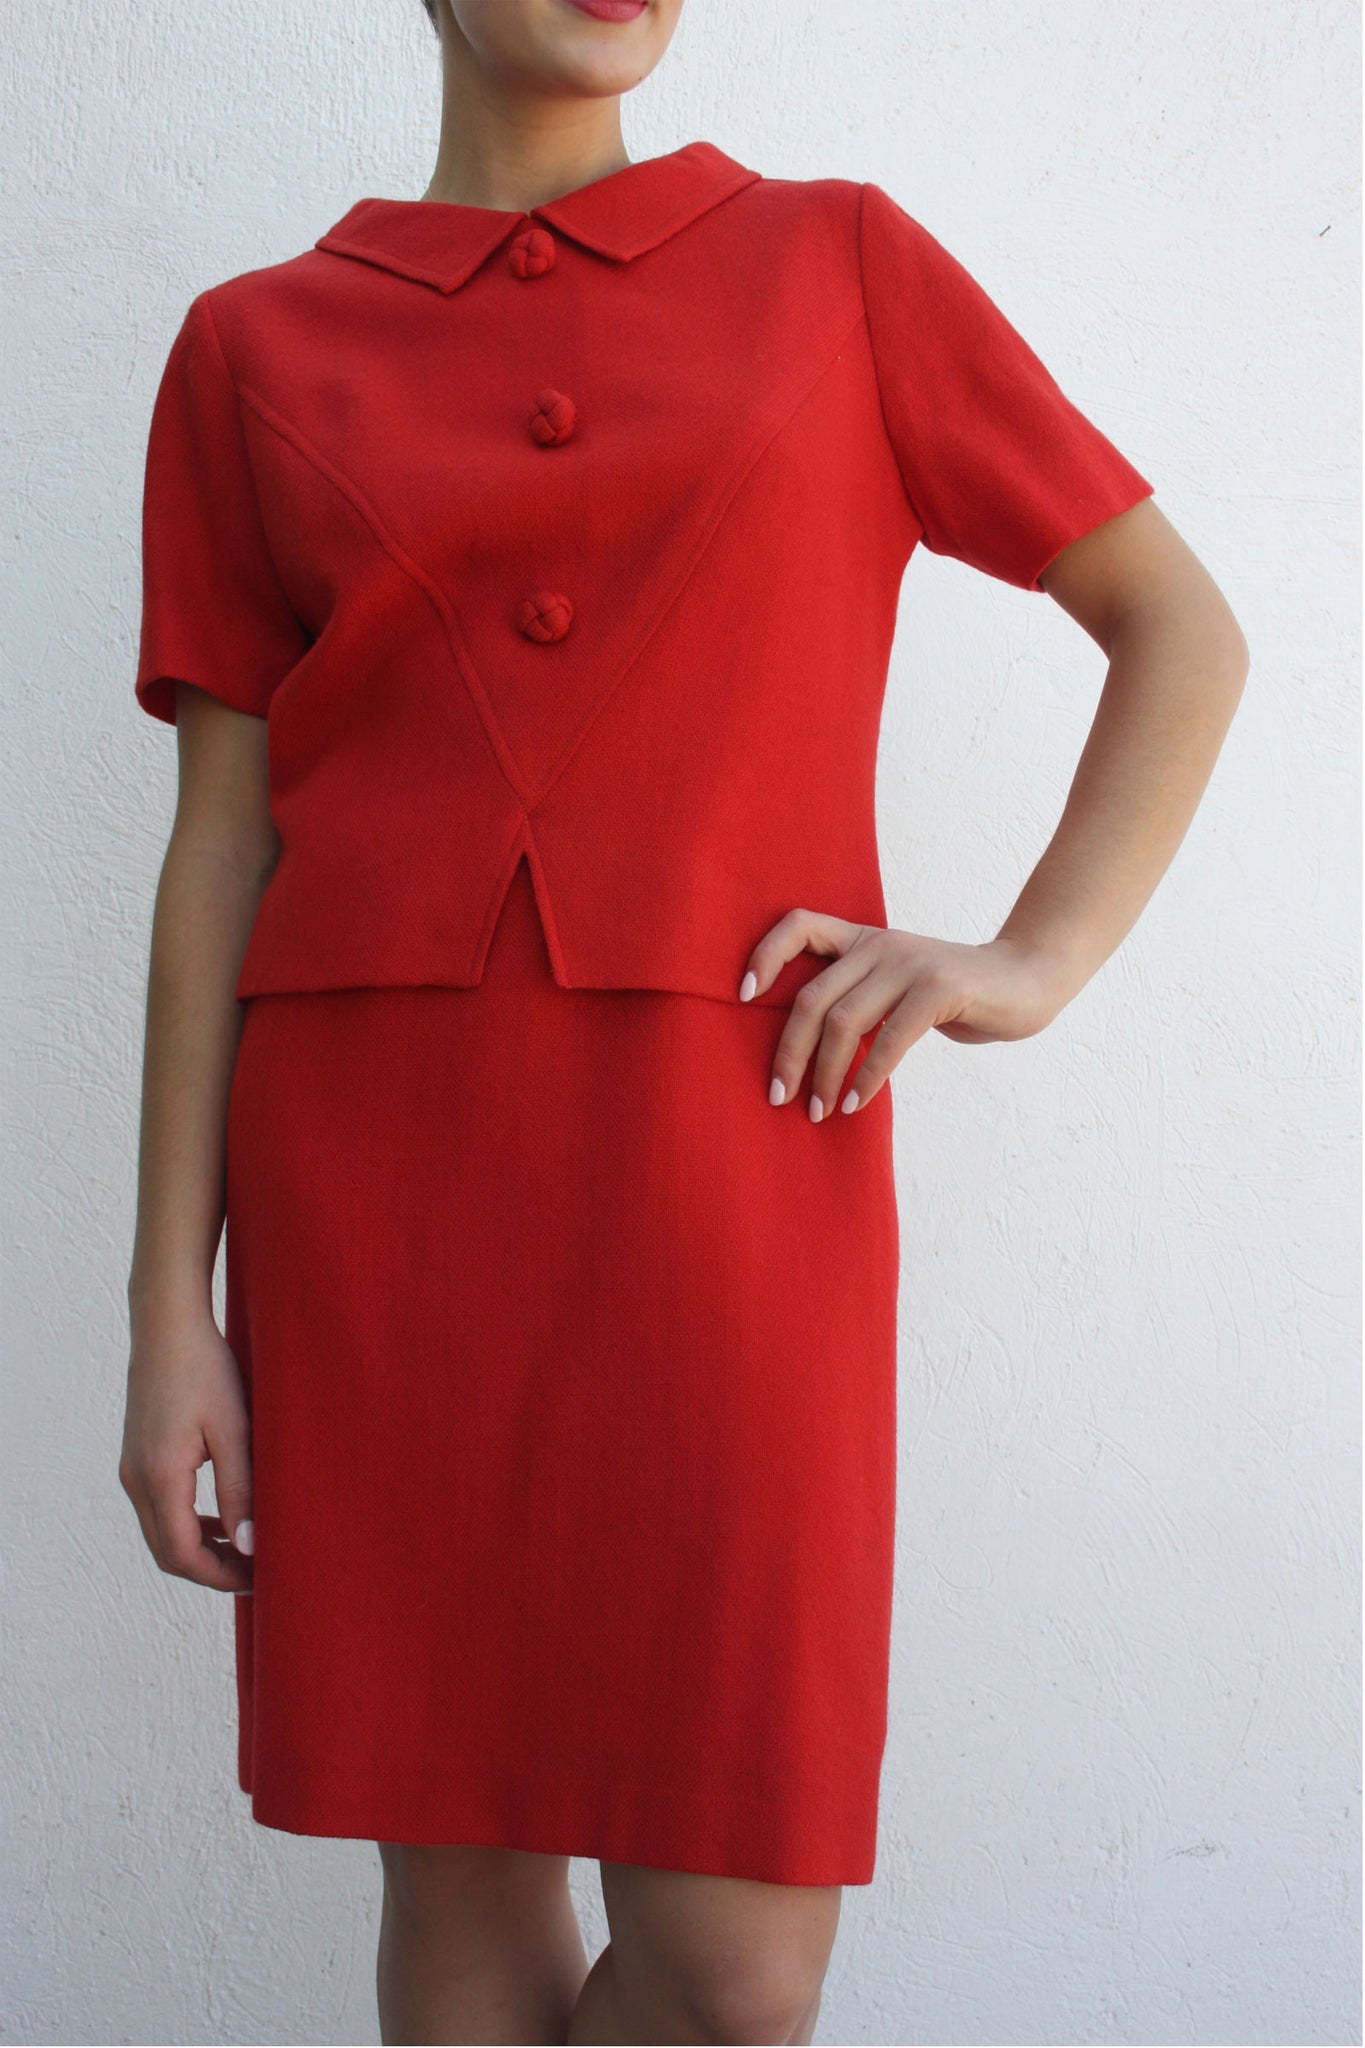 Vintage 50's vintage red suit - Shop SoLovesVintage